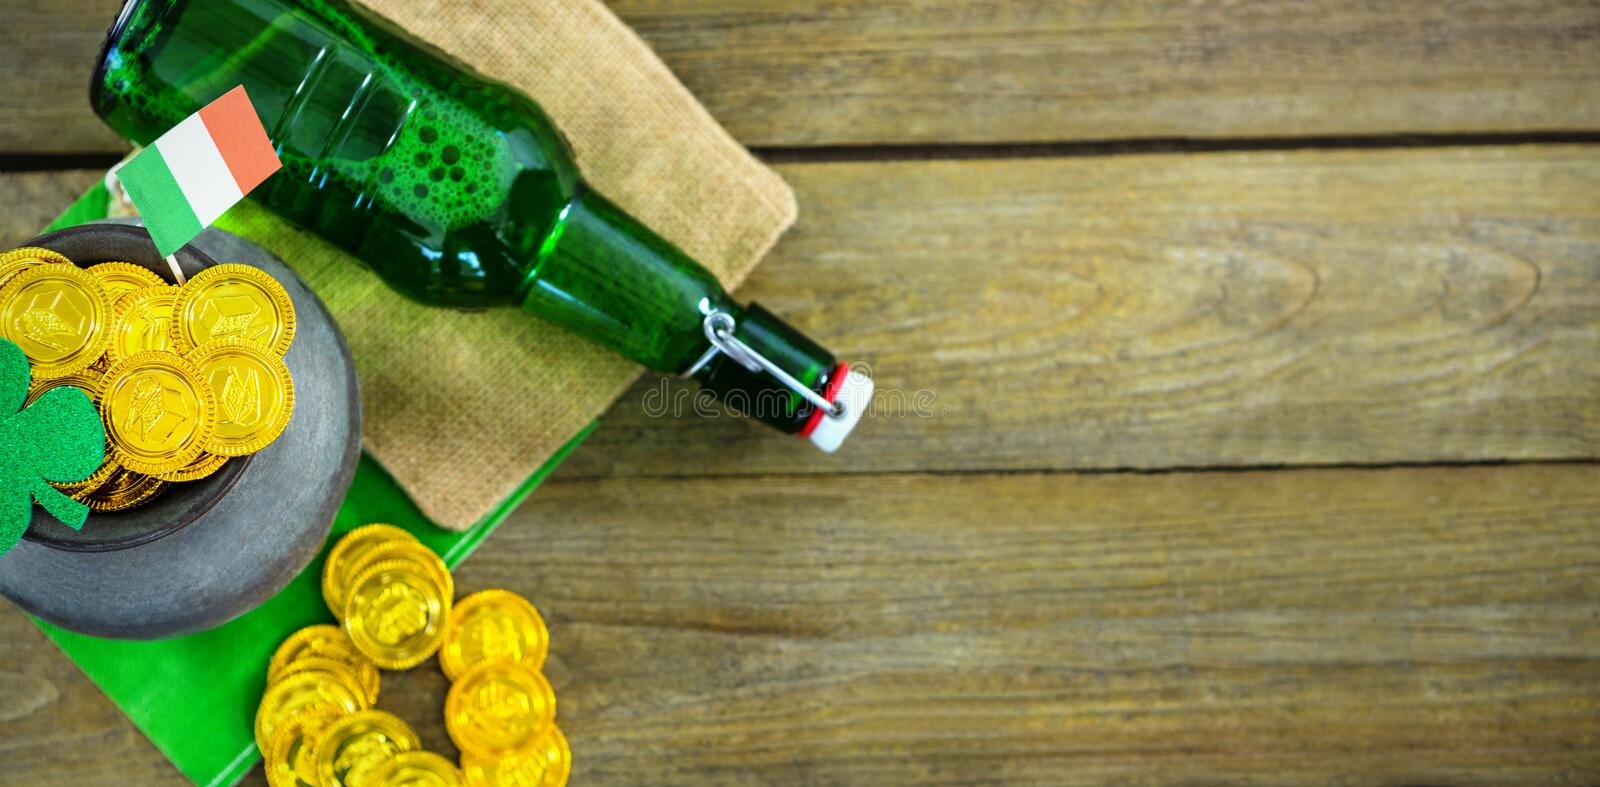 St Patricks Day shamrock with flag and beer bottle by pot filled with chocolate gold coins stock images